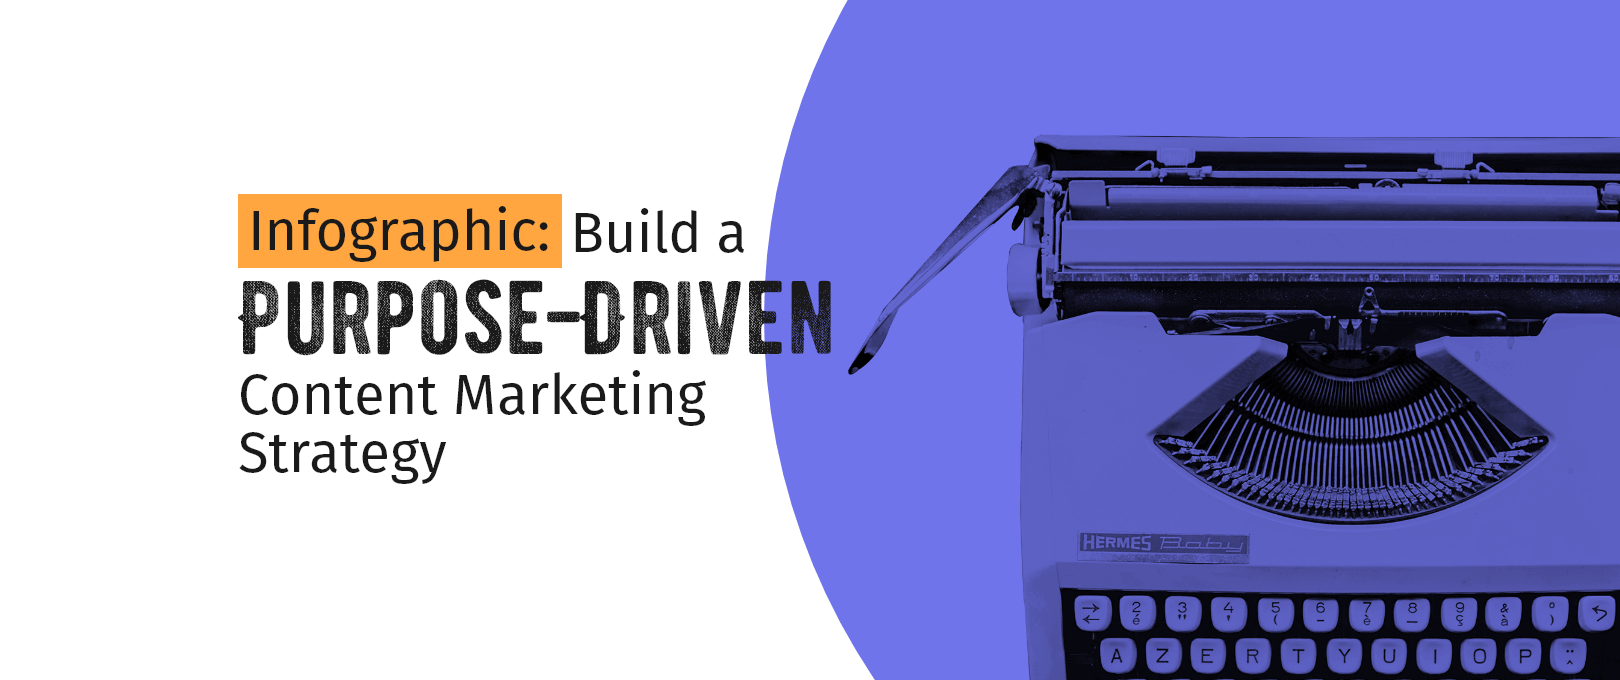 infographic-build-purpose-driven-marketing-strategy